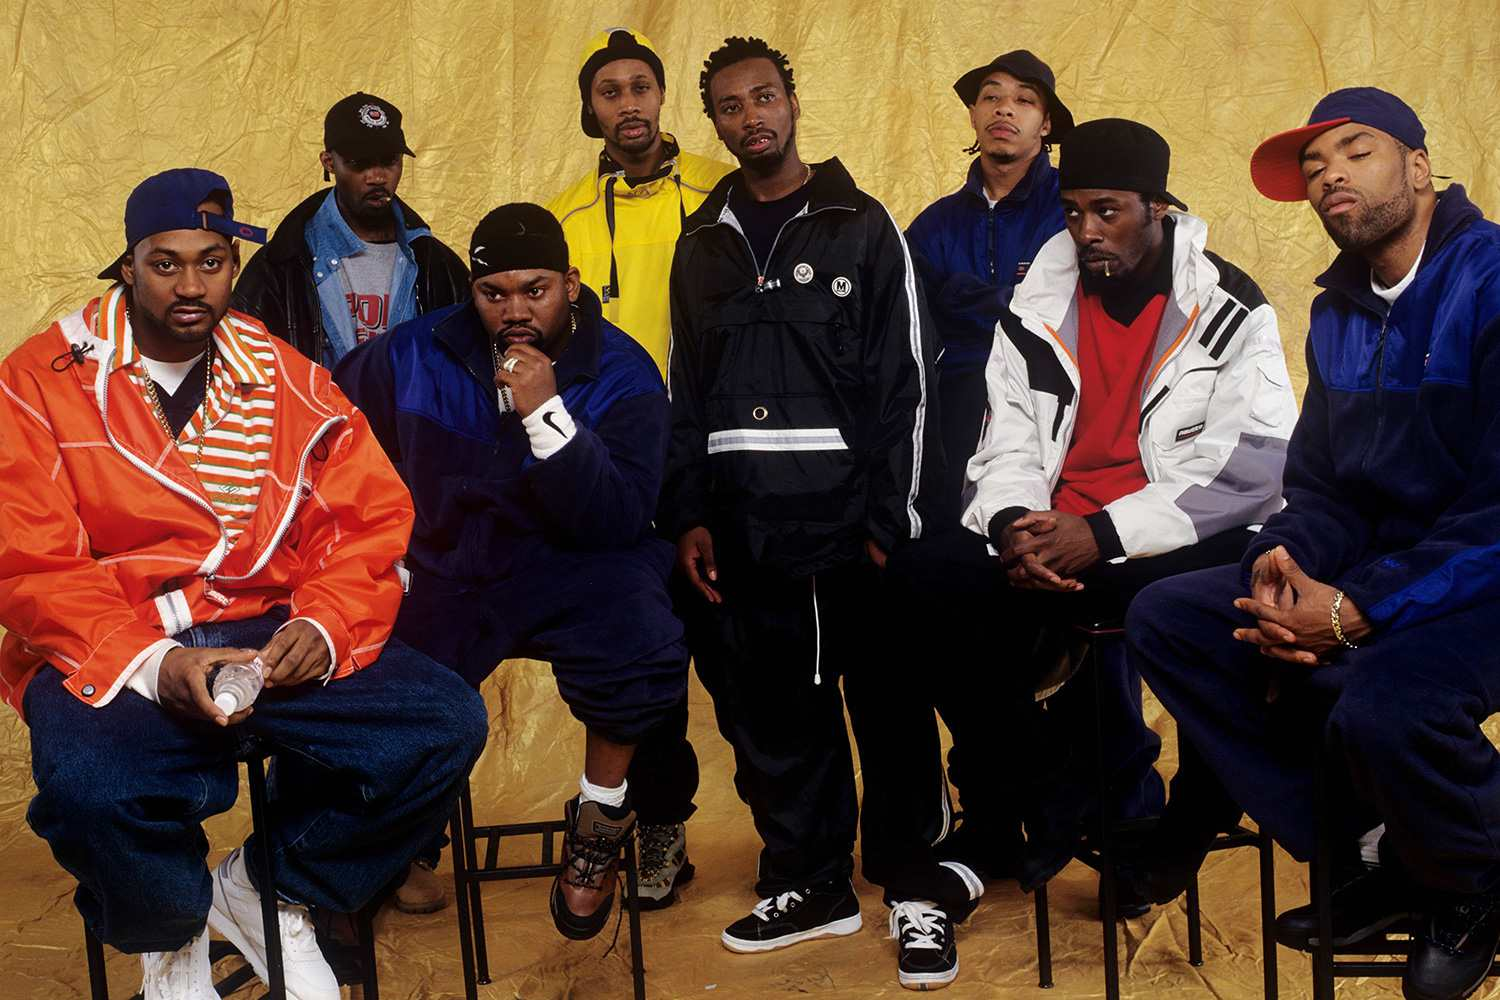 25 Greatest Hip-Hop Groups of All Time